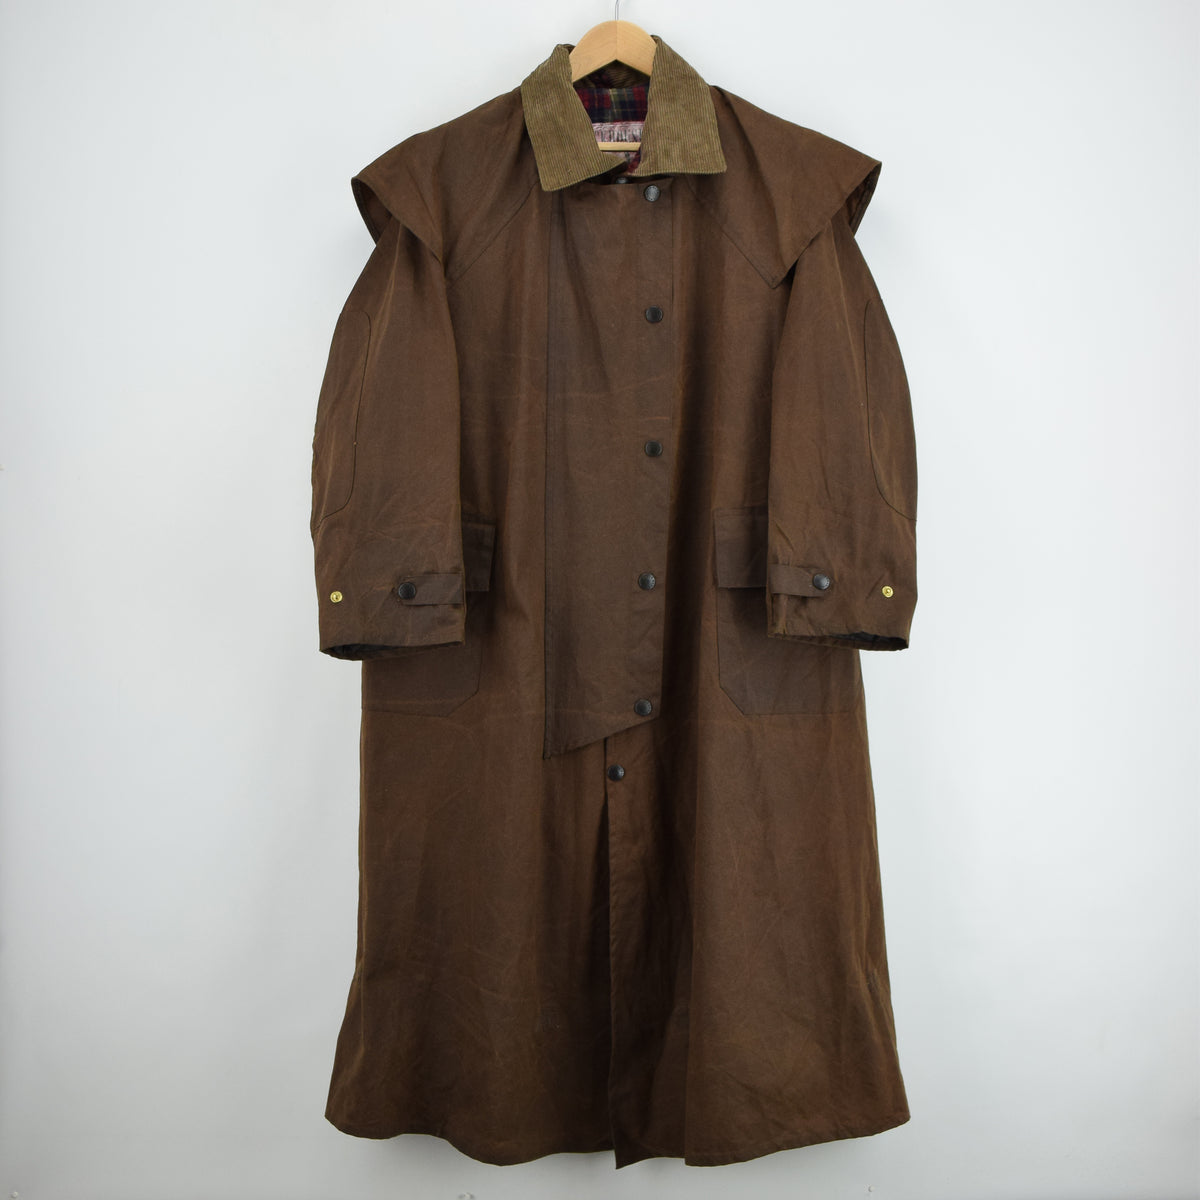 Vintage Backhouse Brown A1250 Stockman's Coat Wax Cotton Riding Jacket S front